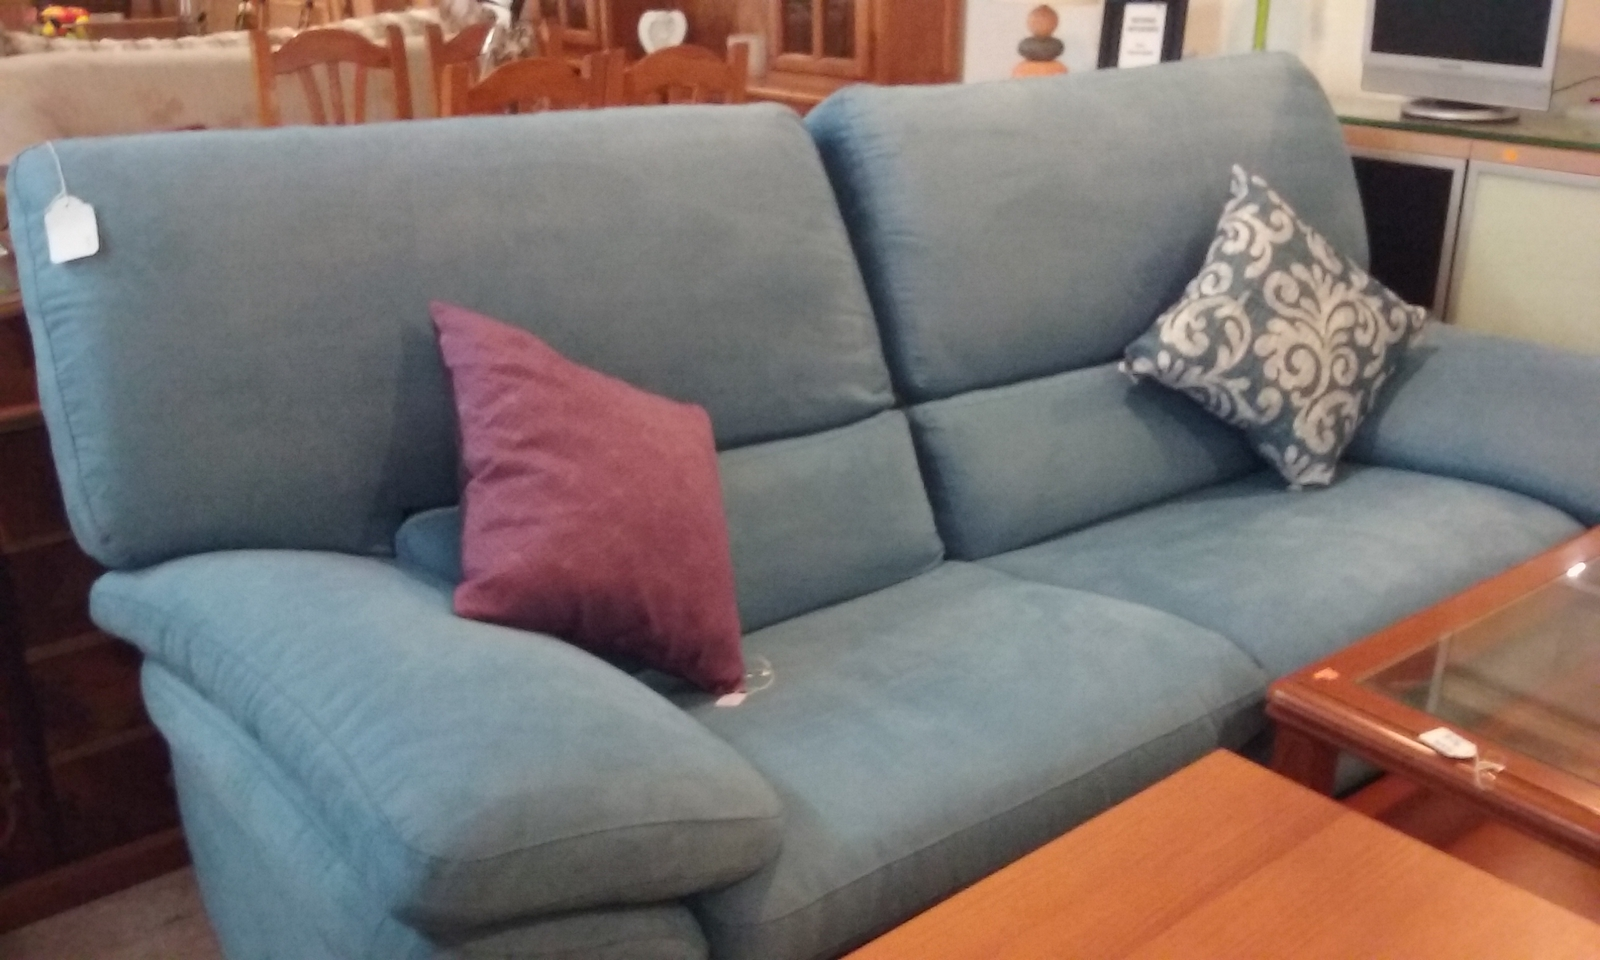 New2you Furniture Second Hand Sofas Sofa Beds For The Living Room Ref H70 Torrevieja Spain